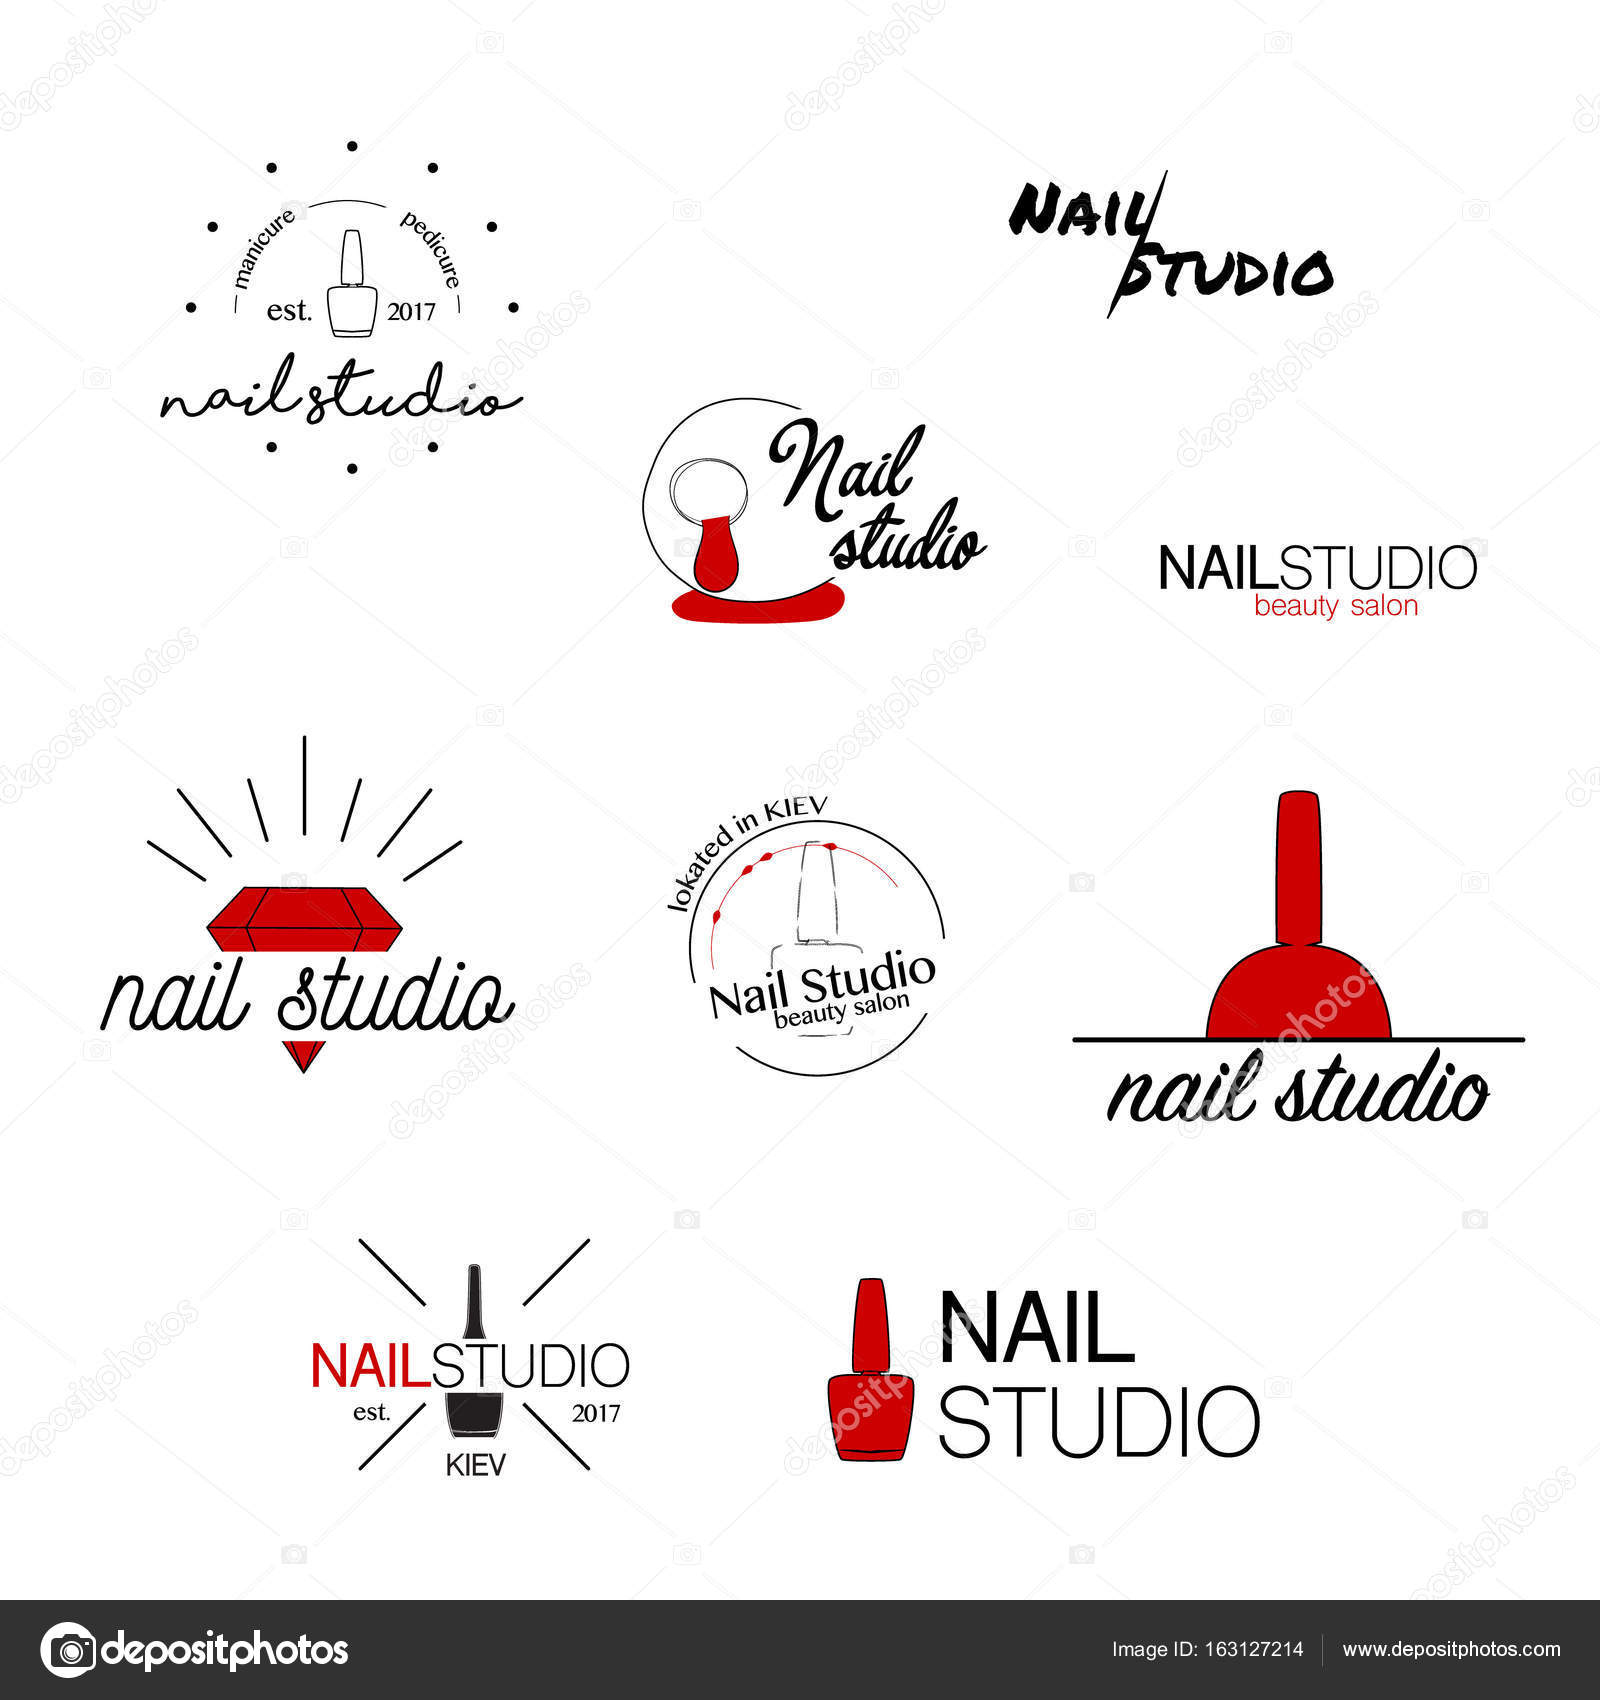 Nail studio vector icon beauty labels greeting cards nail studio vector icon beauty labels greeting cards illustration logo design typography decoration company card style identity logotype emblem ccuart Images